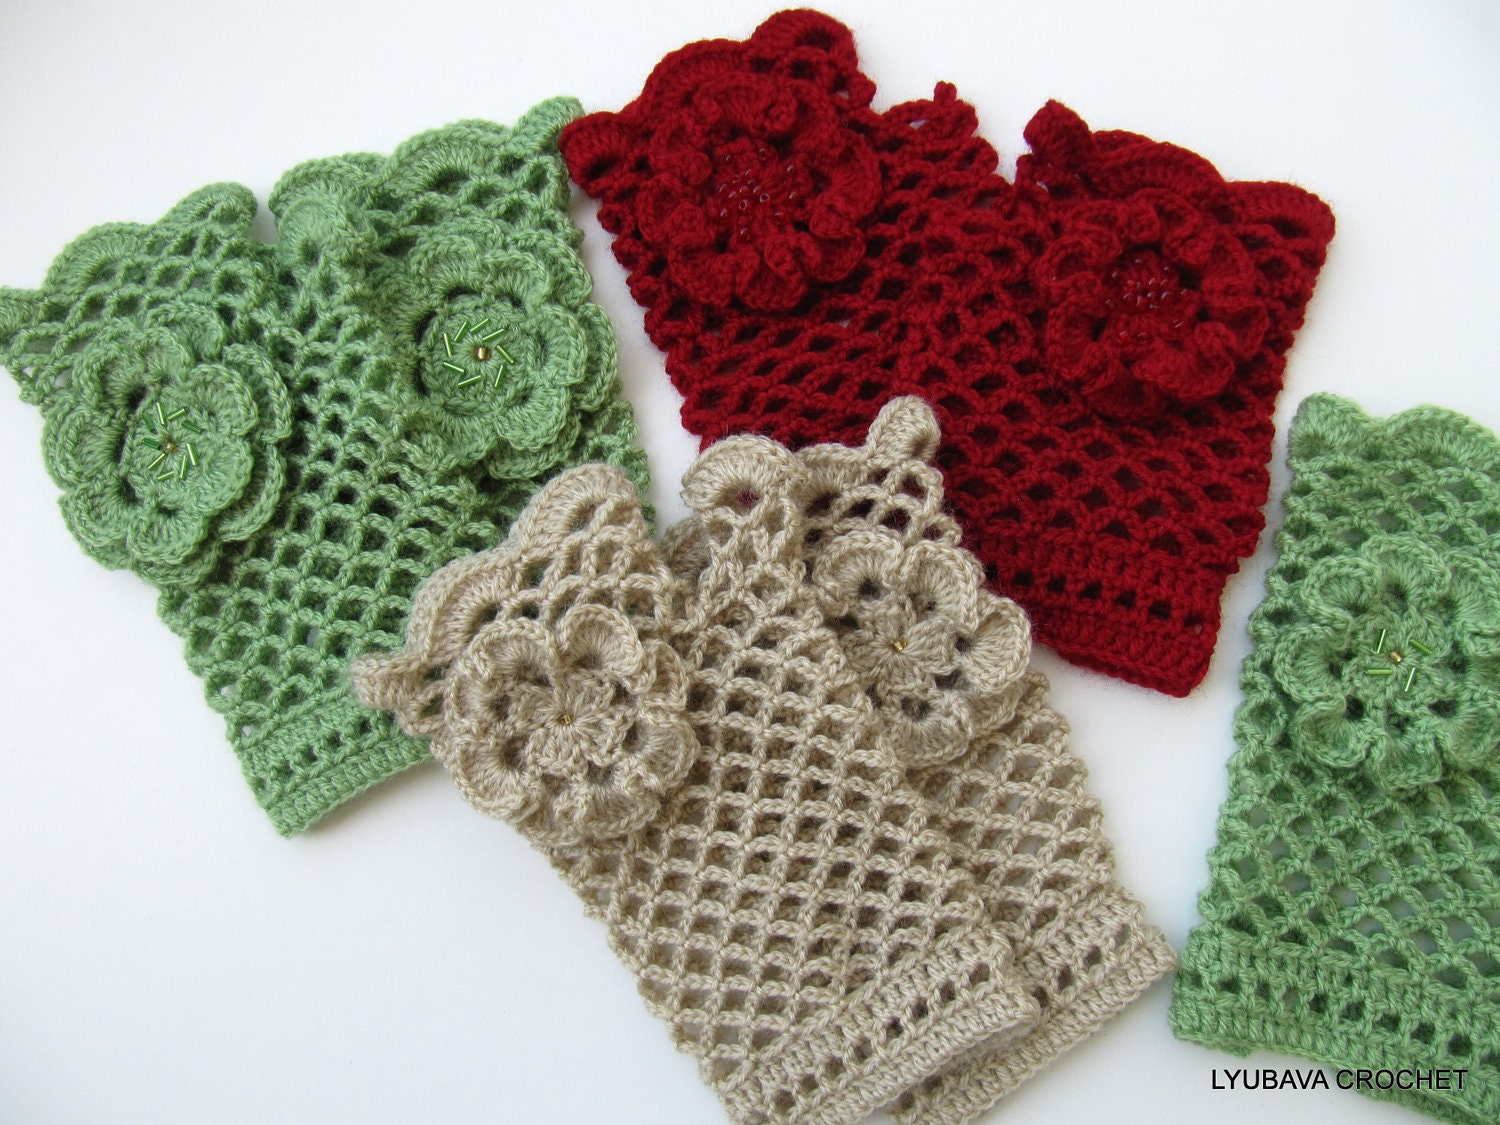 Fingerless gloves easy knitting pattern - Crochet Pattern Fingerless Gloves Craft Supply Lace Gloves With Flower Diy Gifts Instant Download Pdf Pattern No 44 By Lyubava Crochet